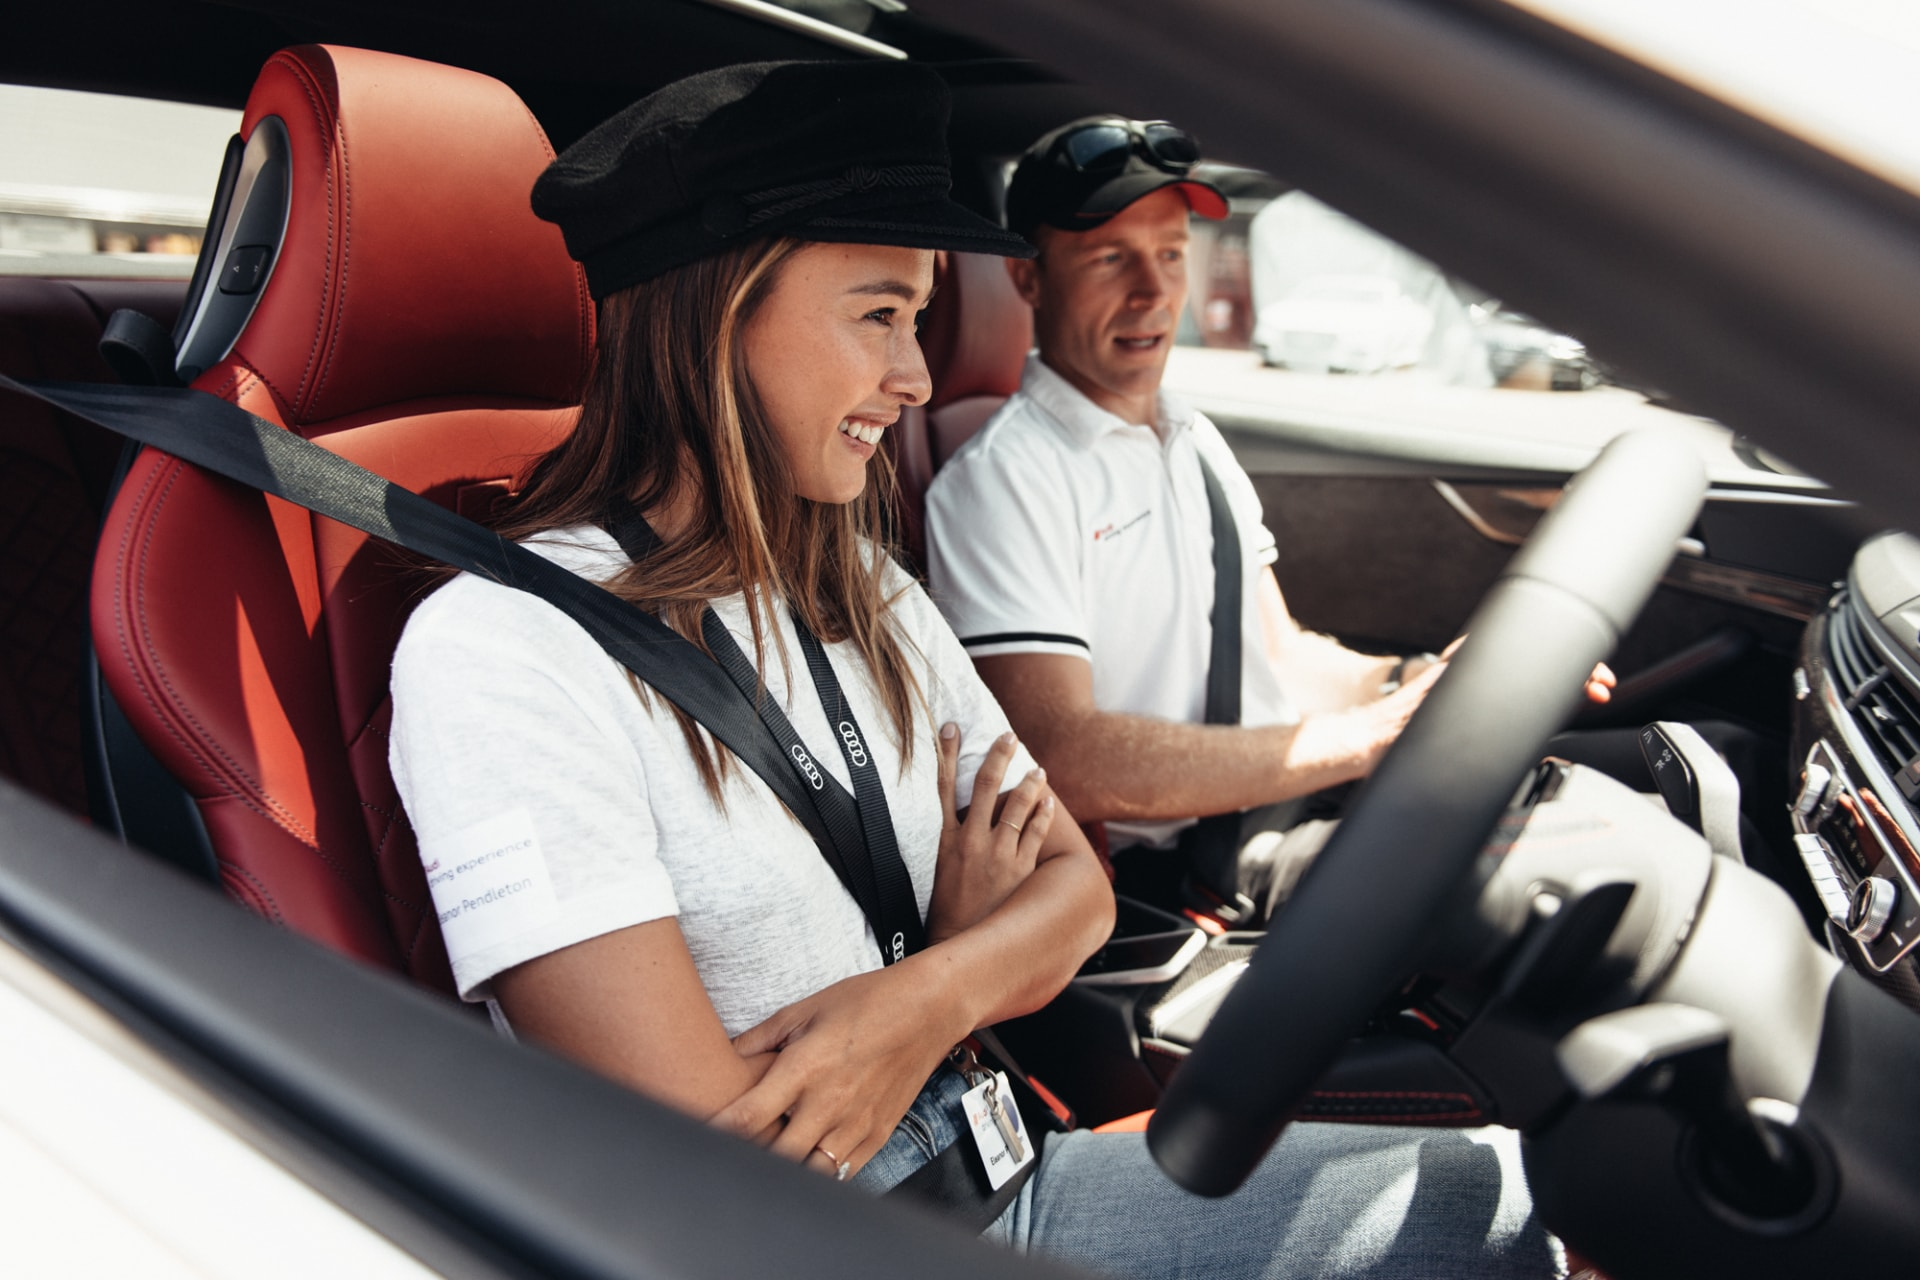 Audi launches an all new women's only driving experience